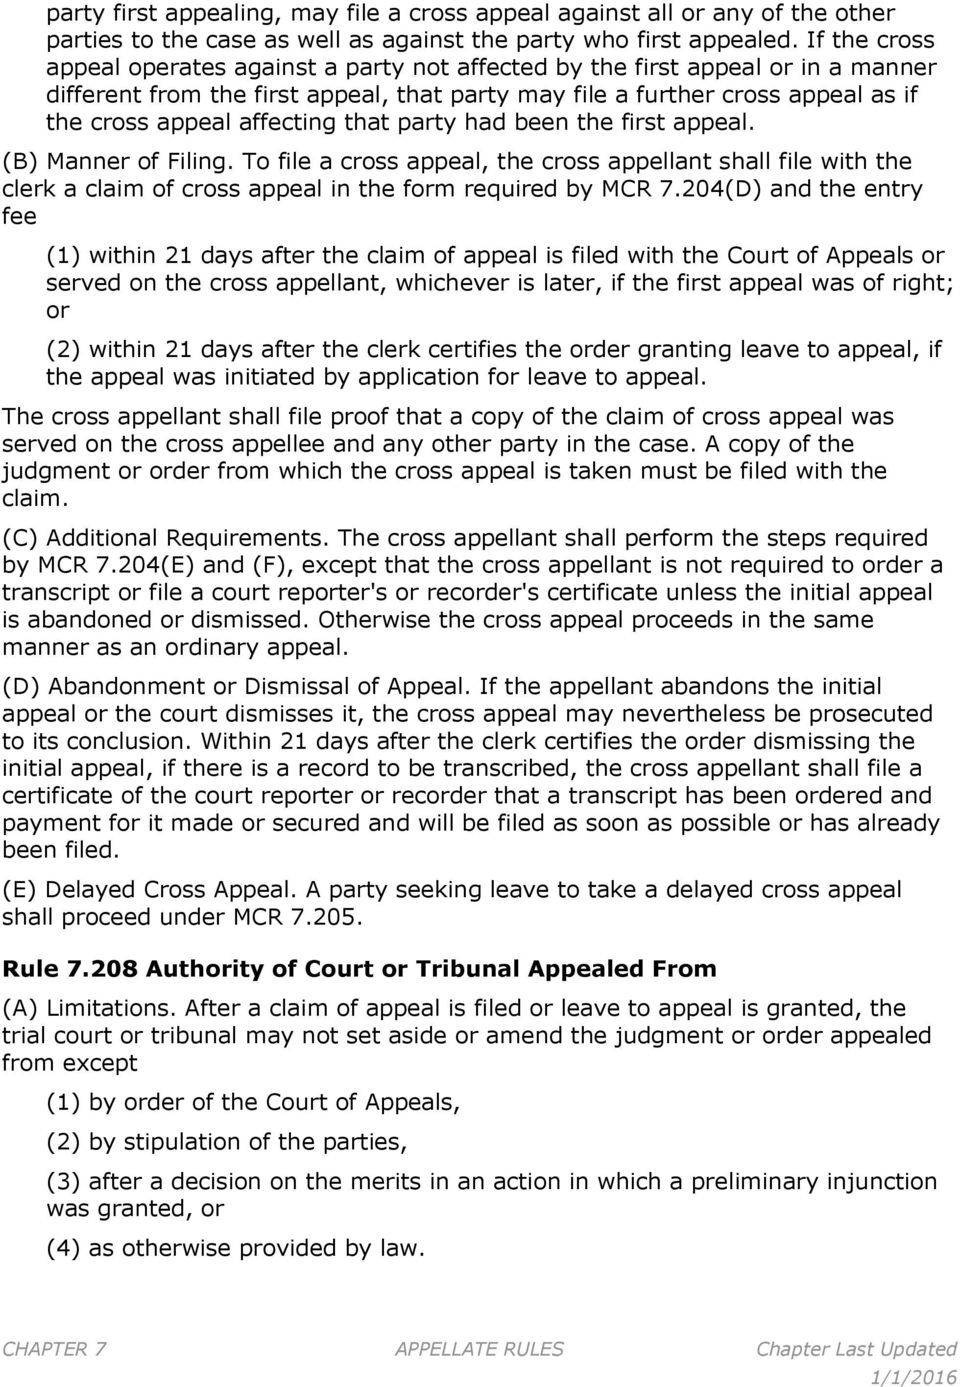 affecting that party had been the first appeal. (B) Manner of Filing. To file a cross appeal, the cross appellant shall file with the clerk a claim of cross appeal in the form required by MCR 7.